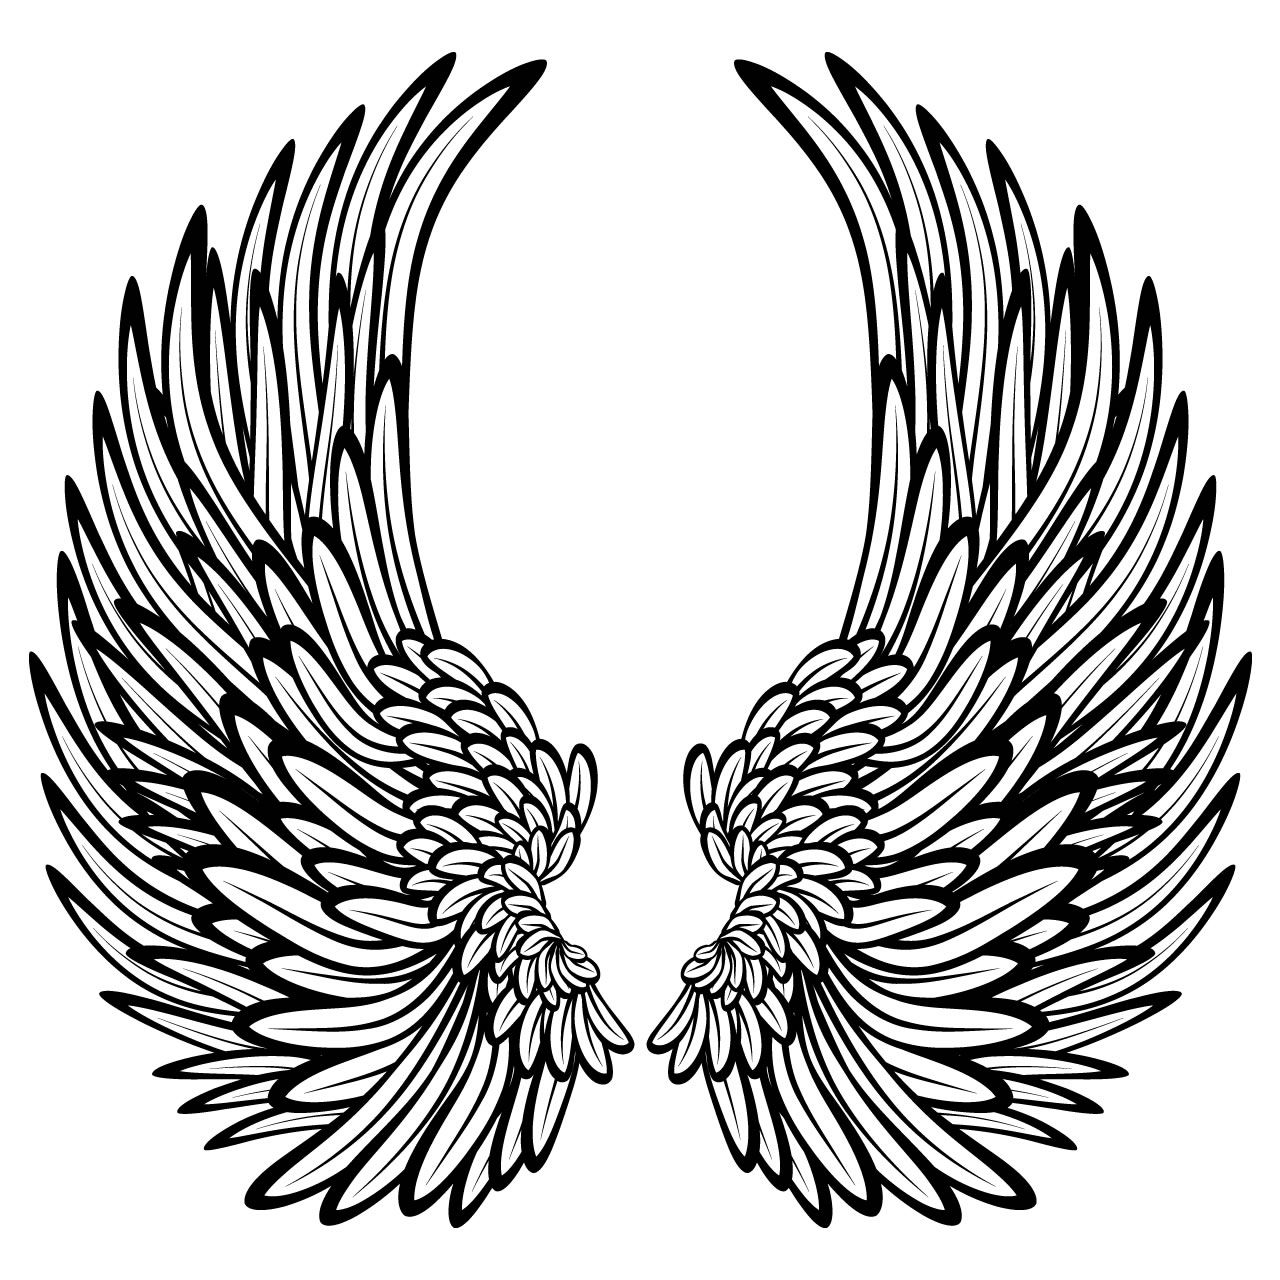 Cross and feathers clipart picture transparent stock Angel Wings With Feathers Wall Stickers / Wall Decals | Angel wings ... picture transparent stock